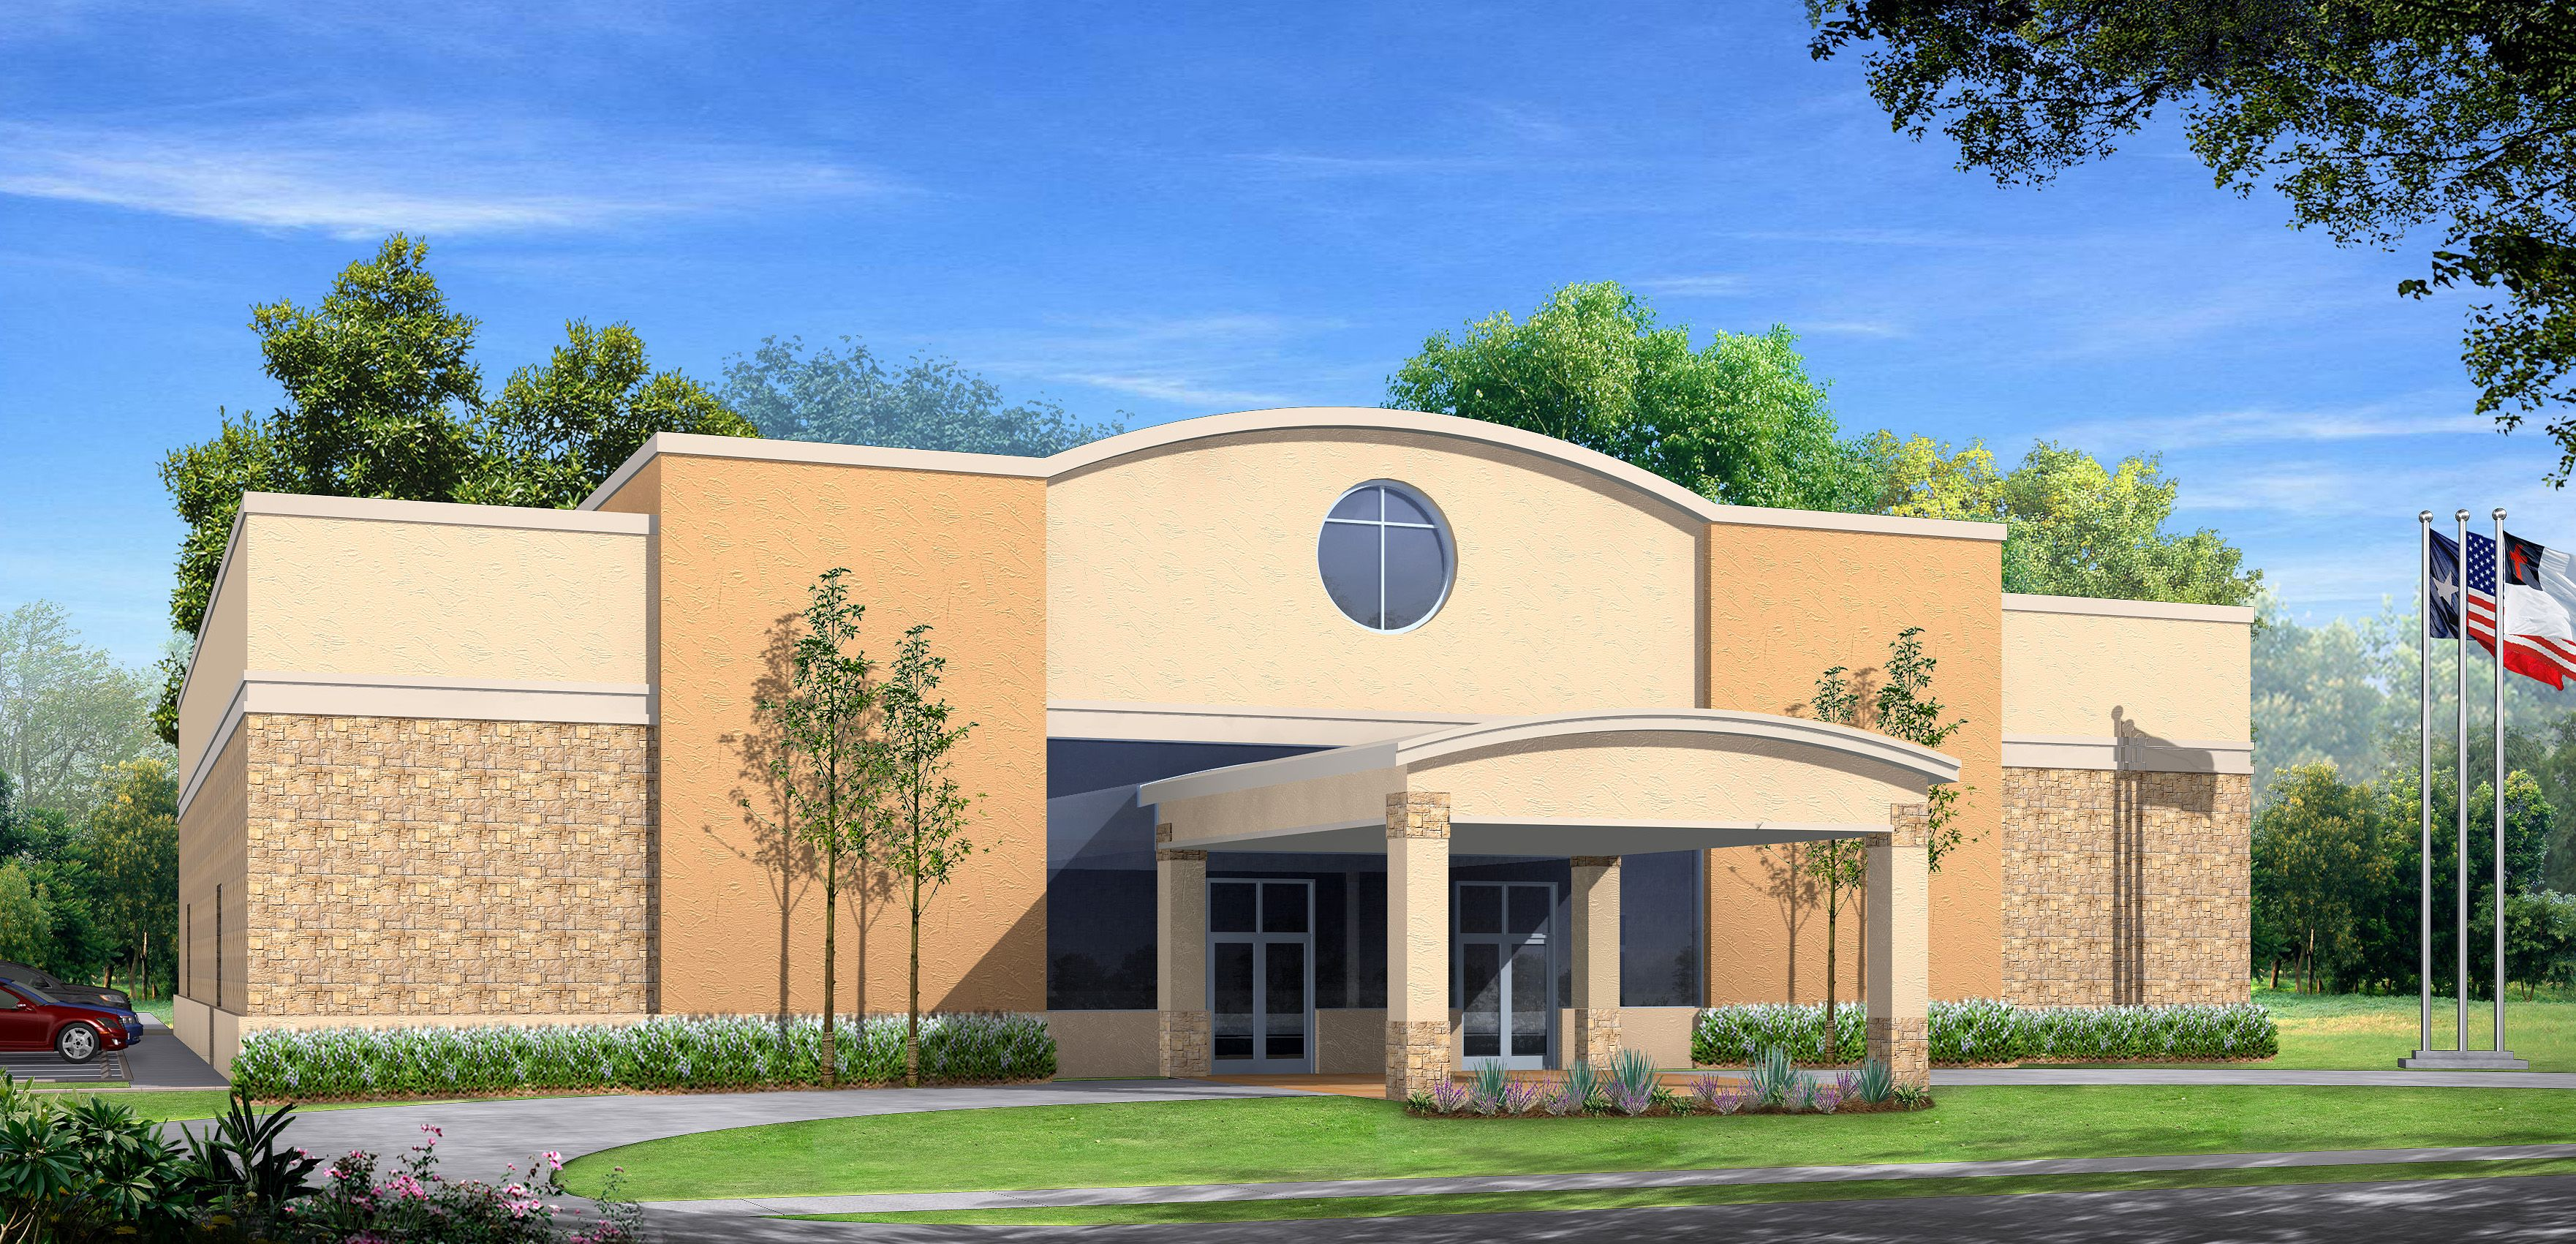 Church building designs alvin missionary baptist church for Church building designs